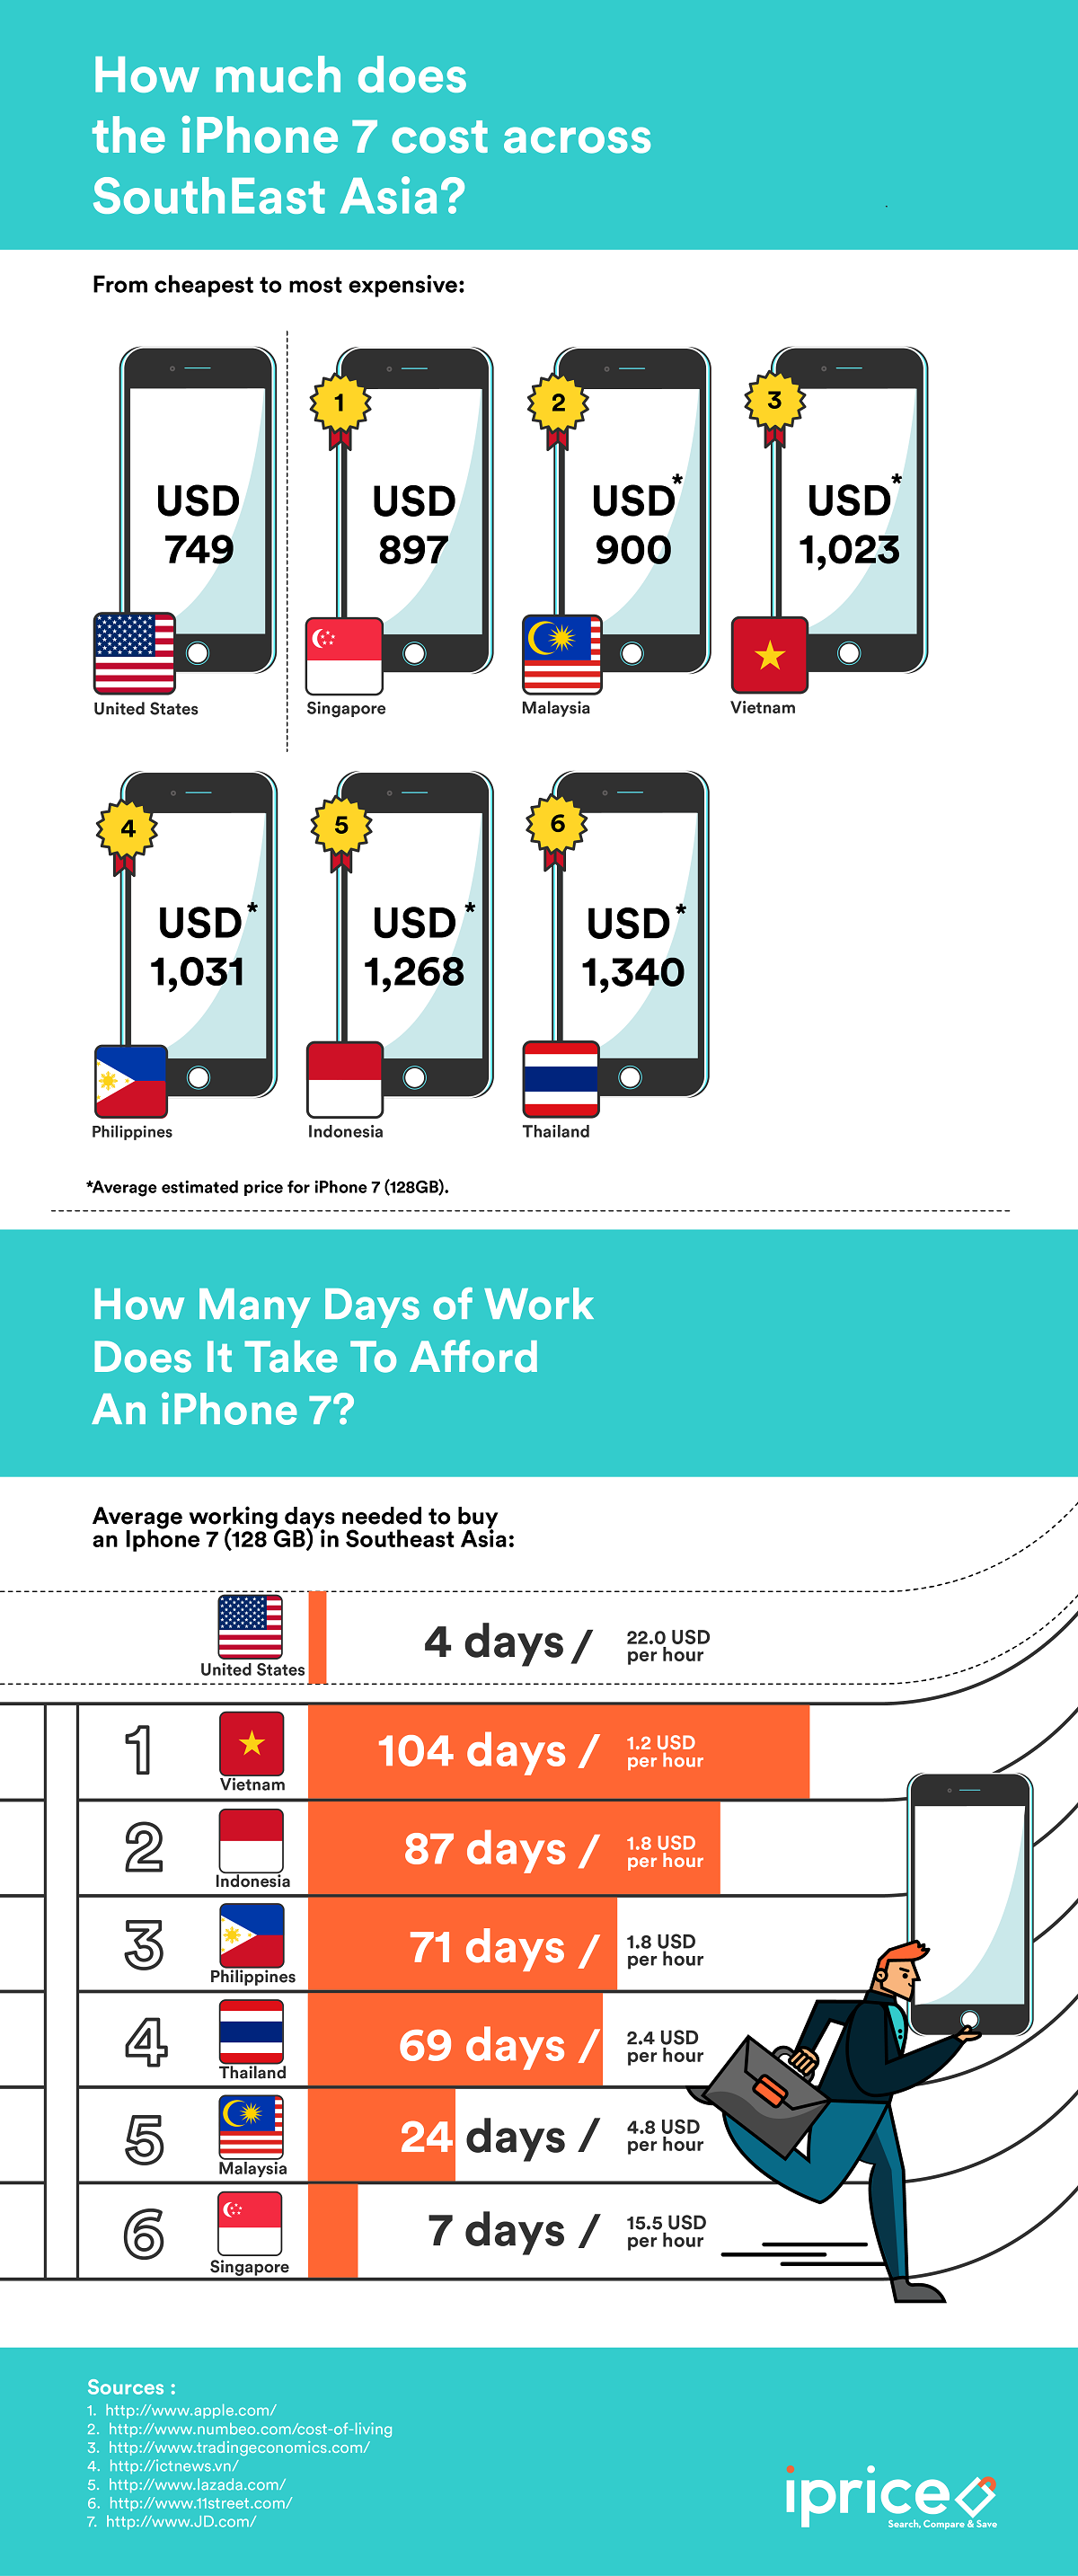 How Much Will The iPhone 7 Cost in South East Asia? #Infographic